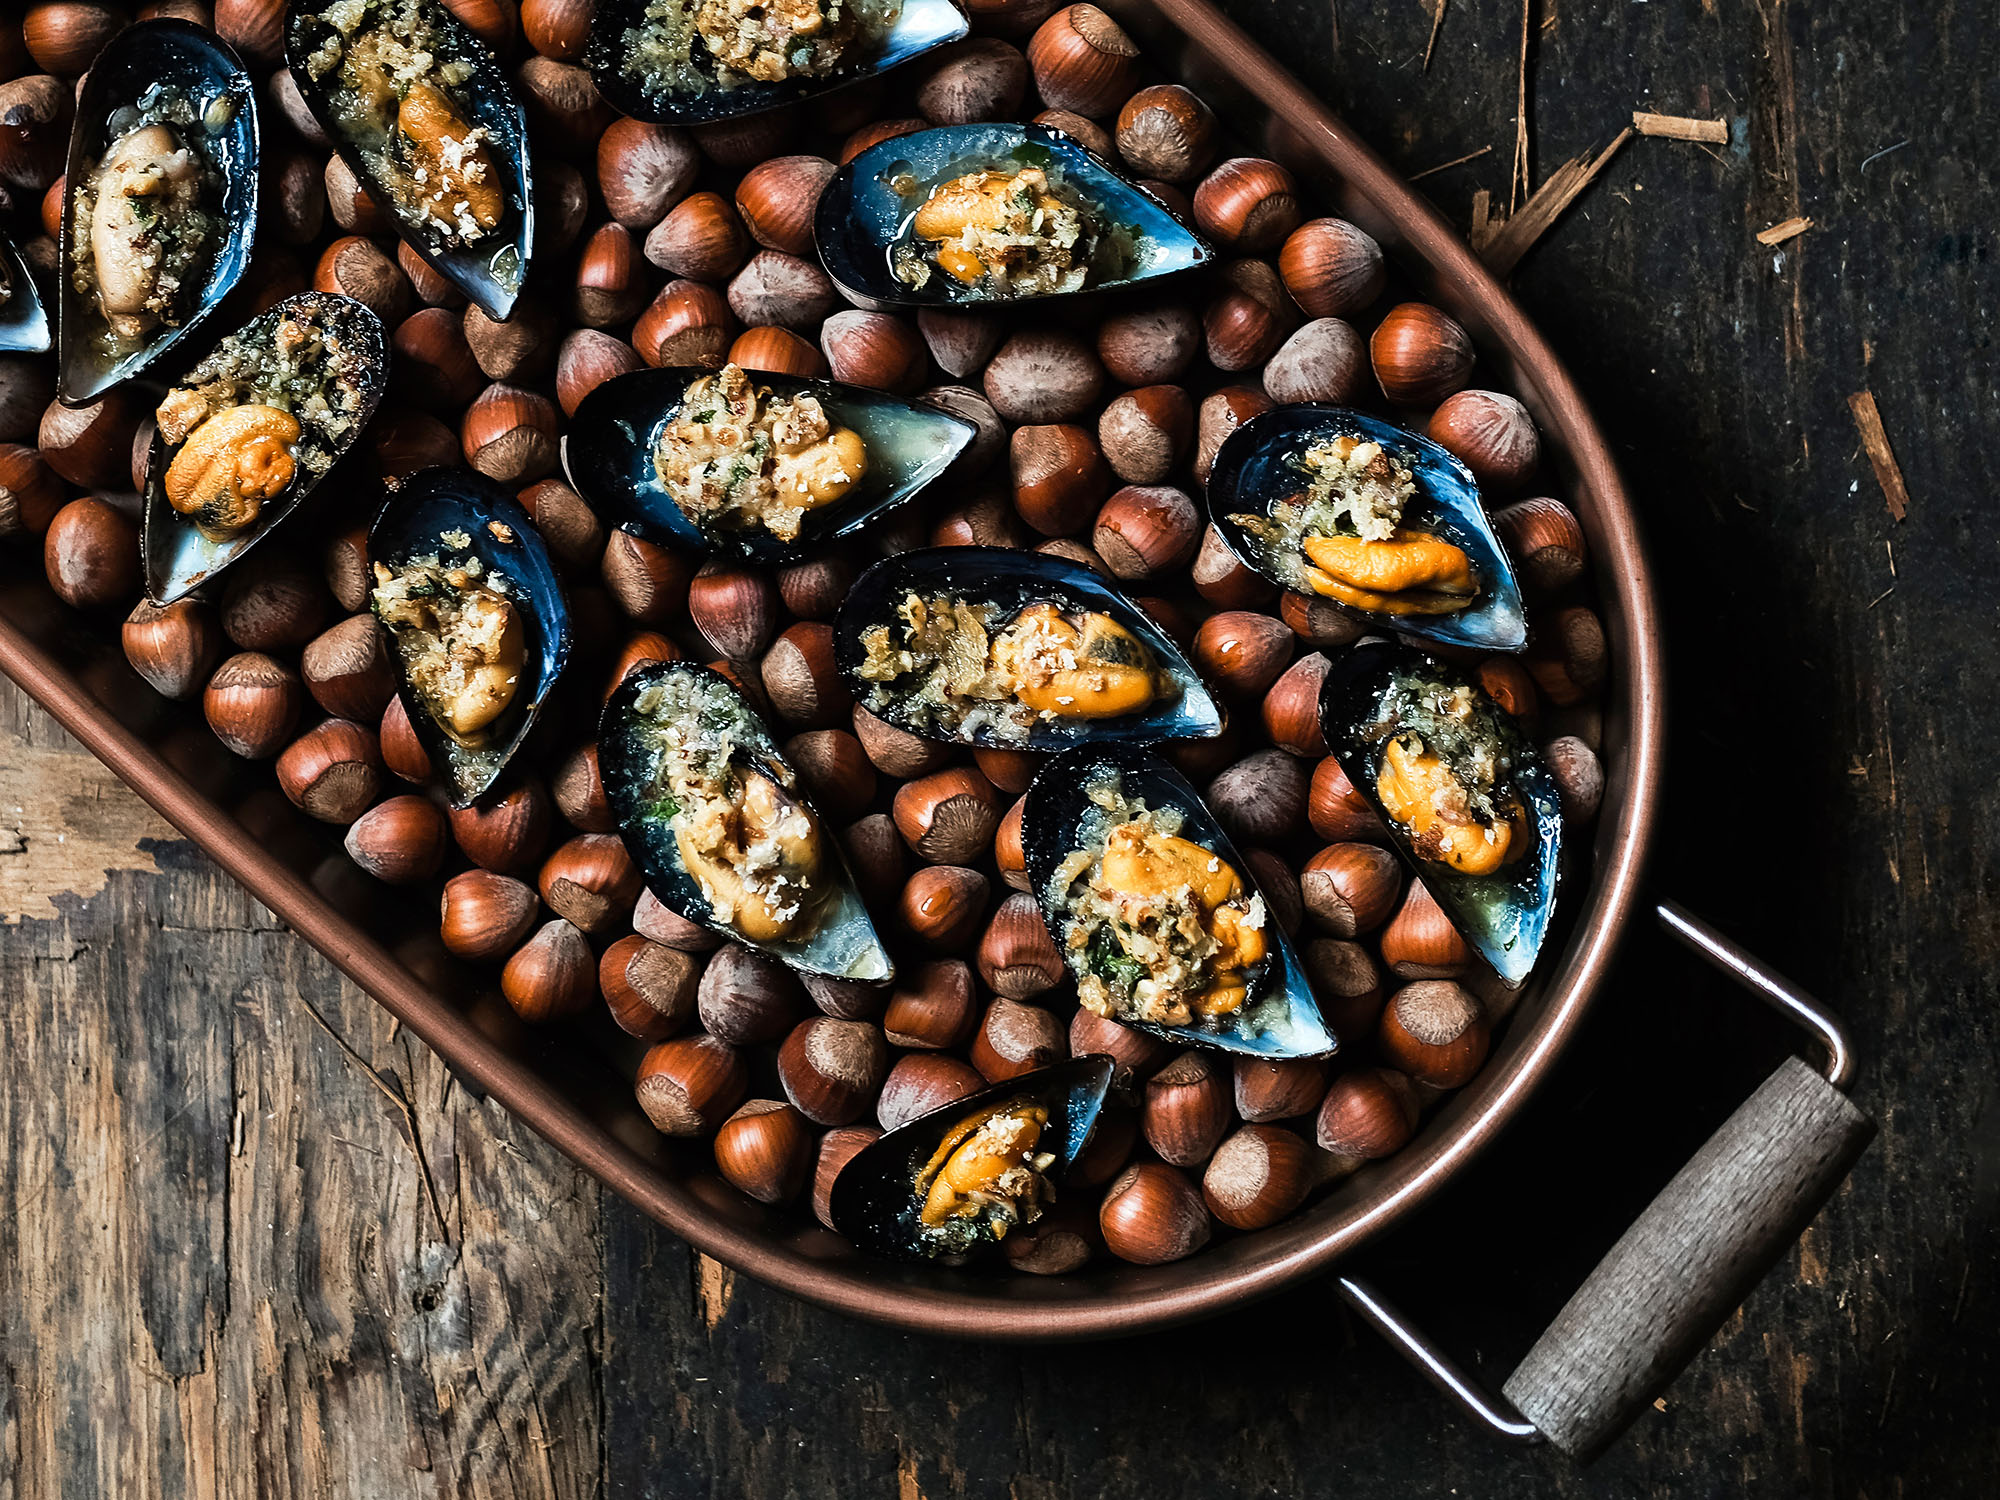 Mussels Baked with Hazelnut Herb Butter